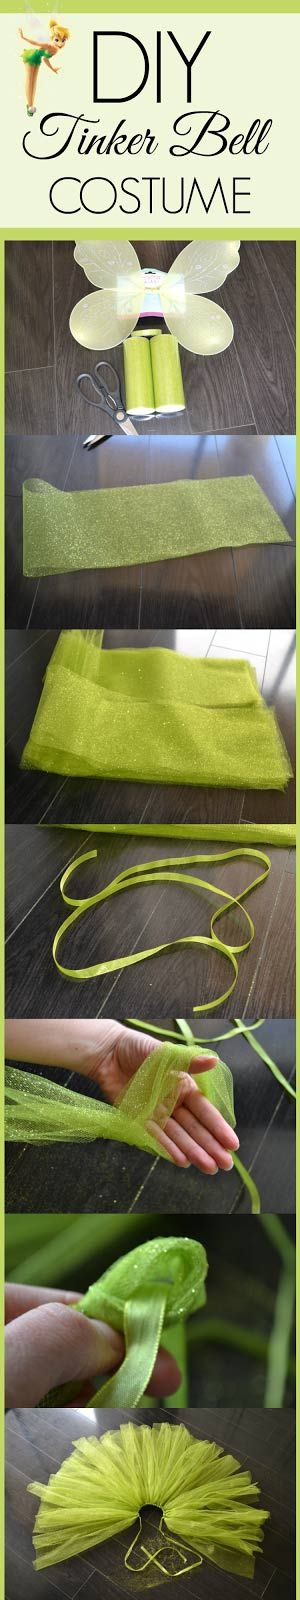 DIY: Tinker Bell Costume | BlogHer